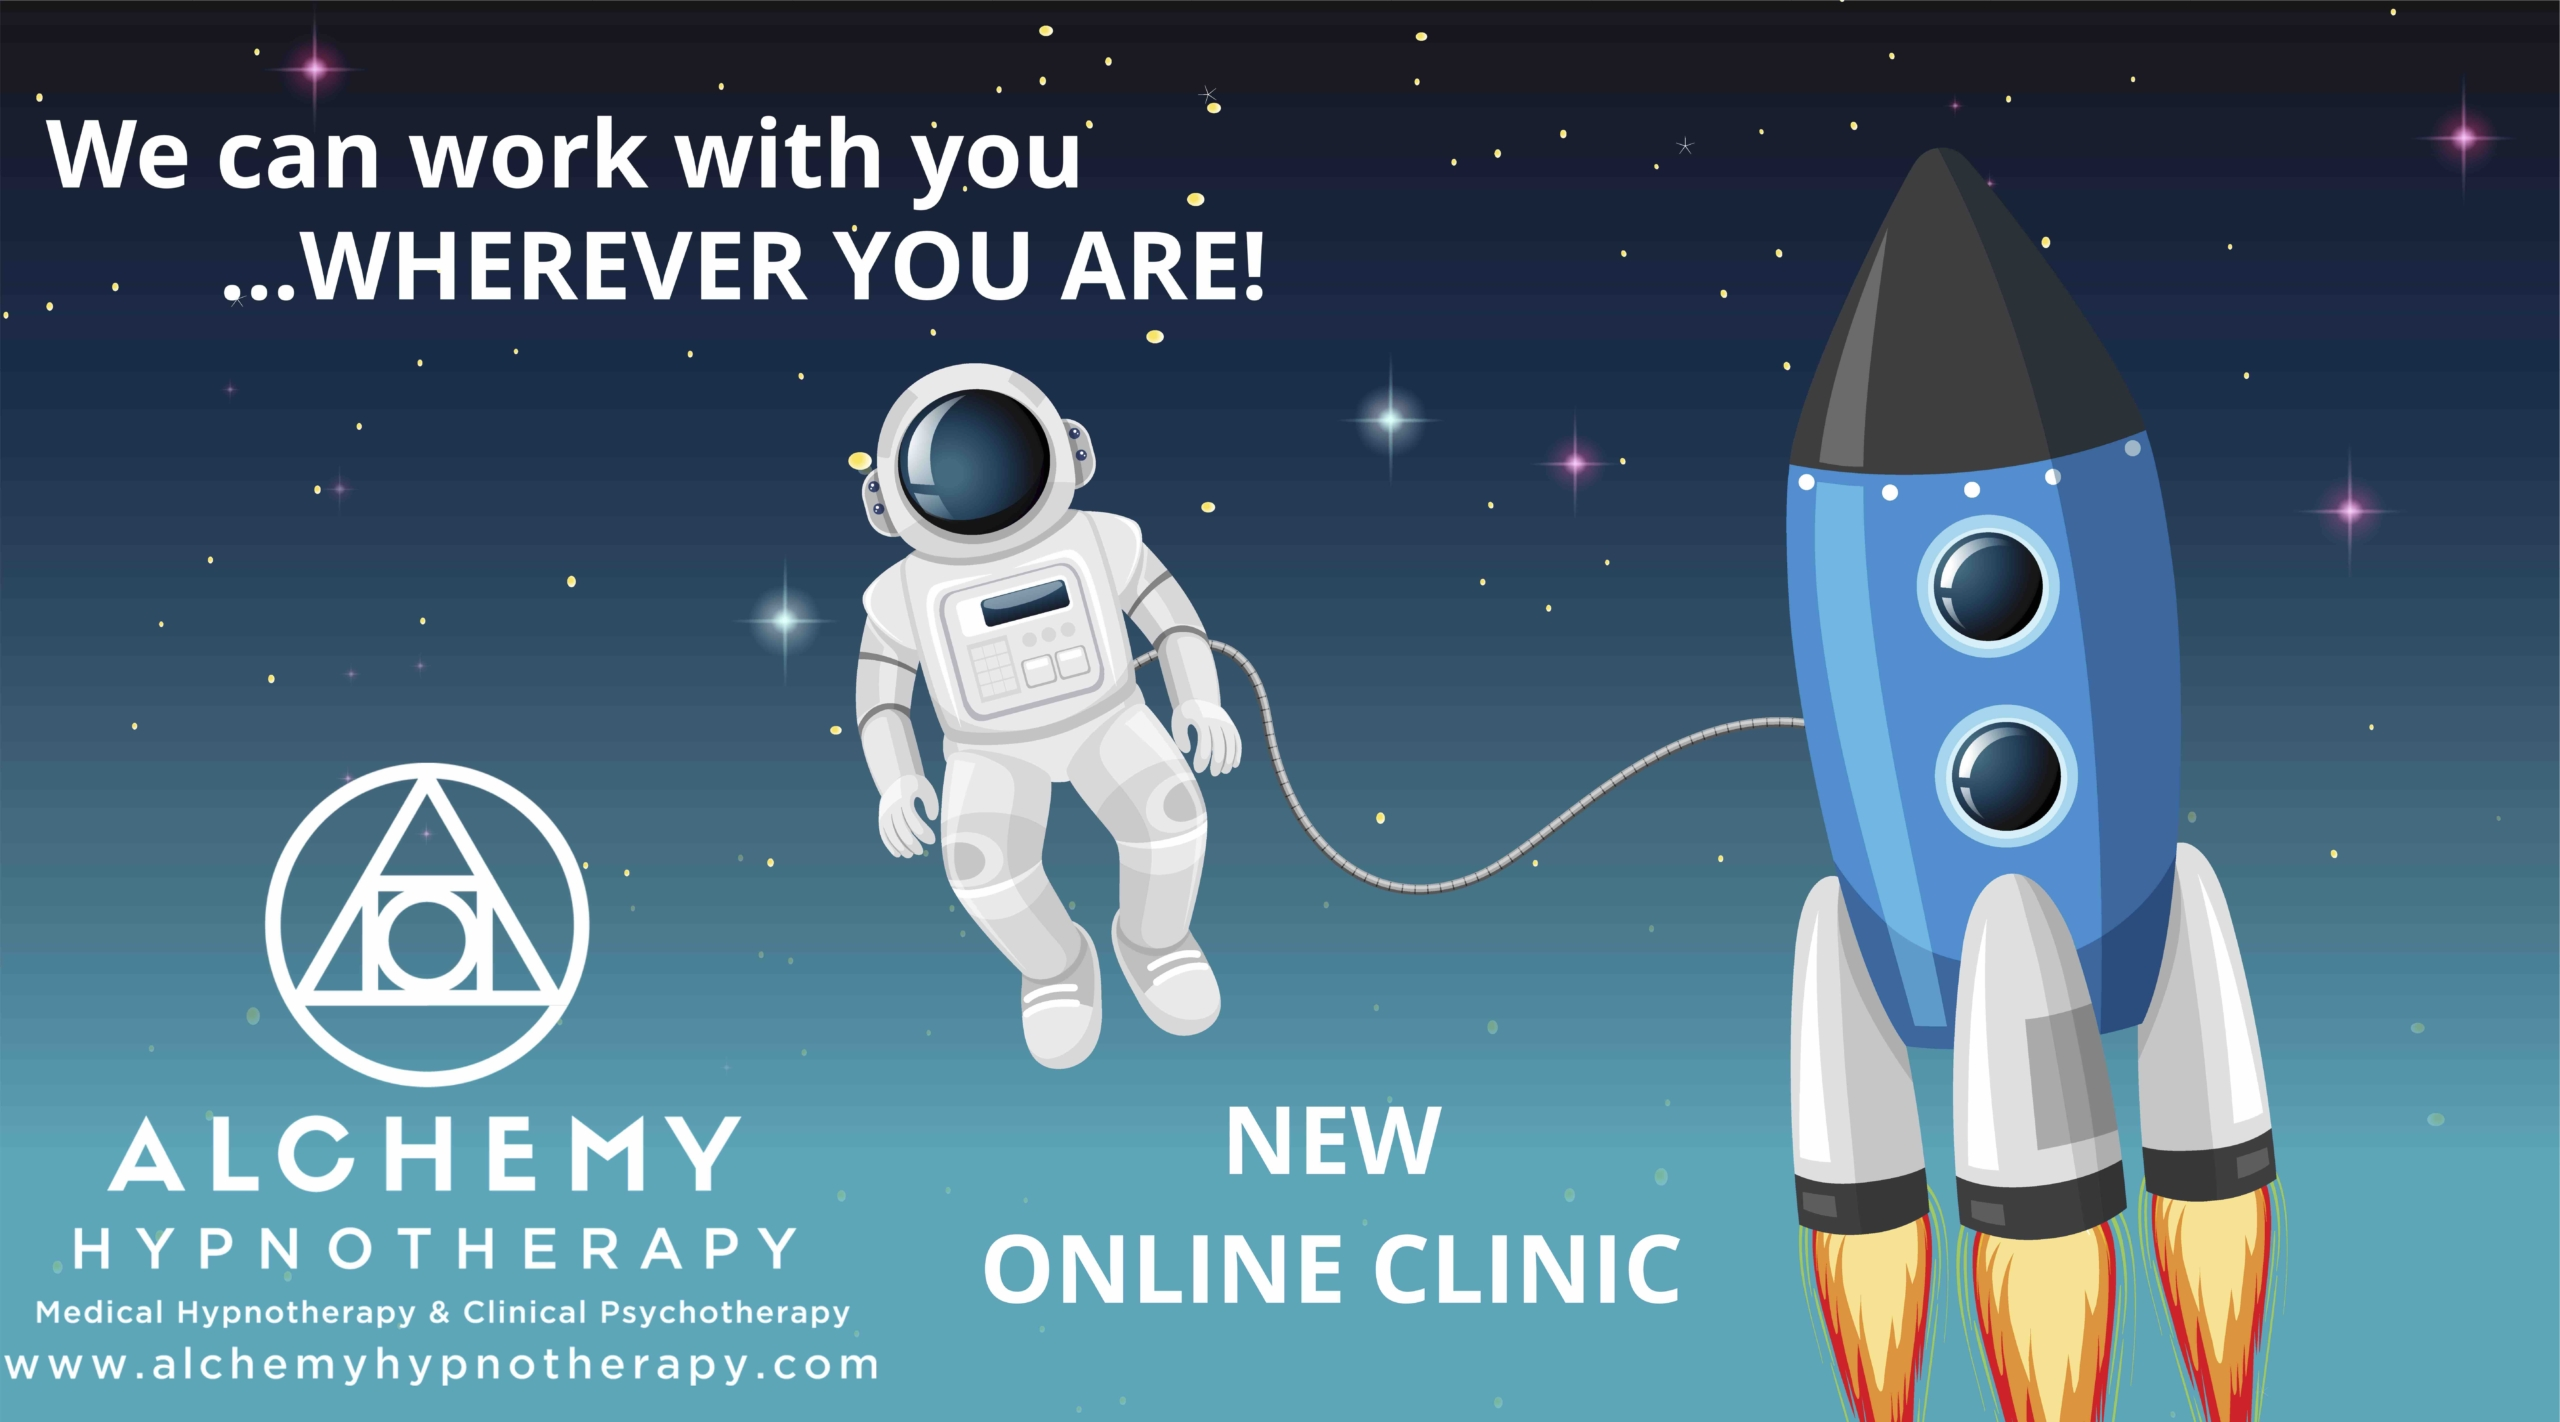 This is a picture of an astronaut and rocket saying we work with you wherever you are.